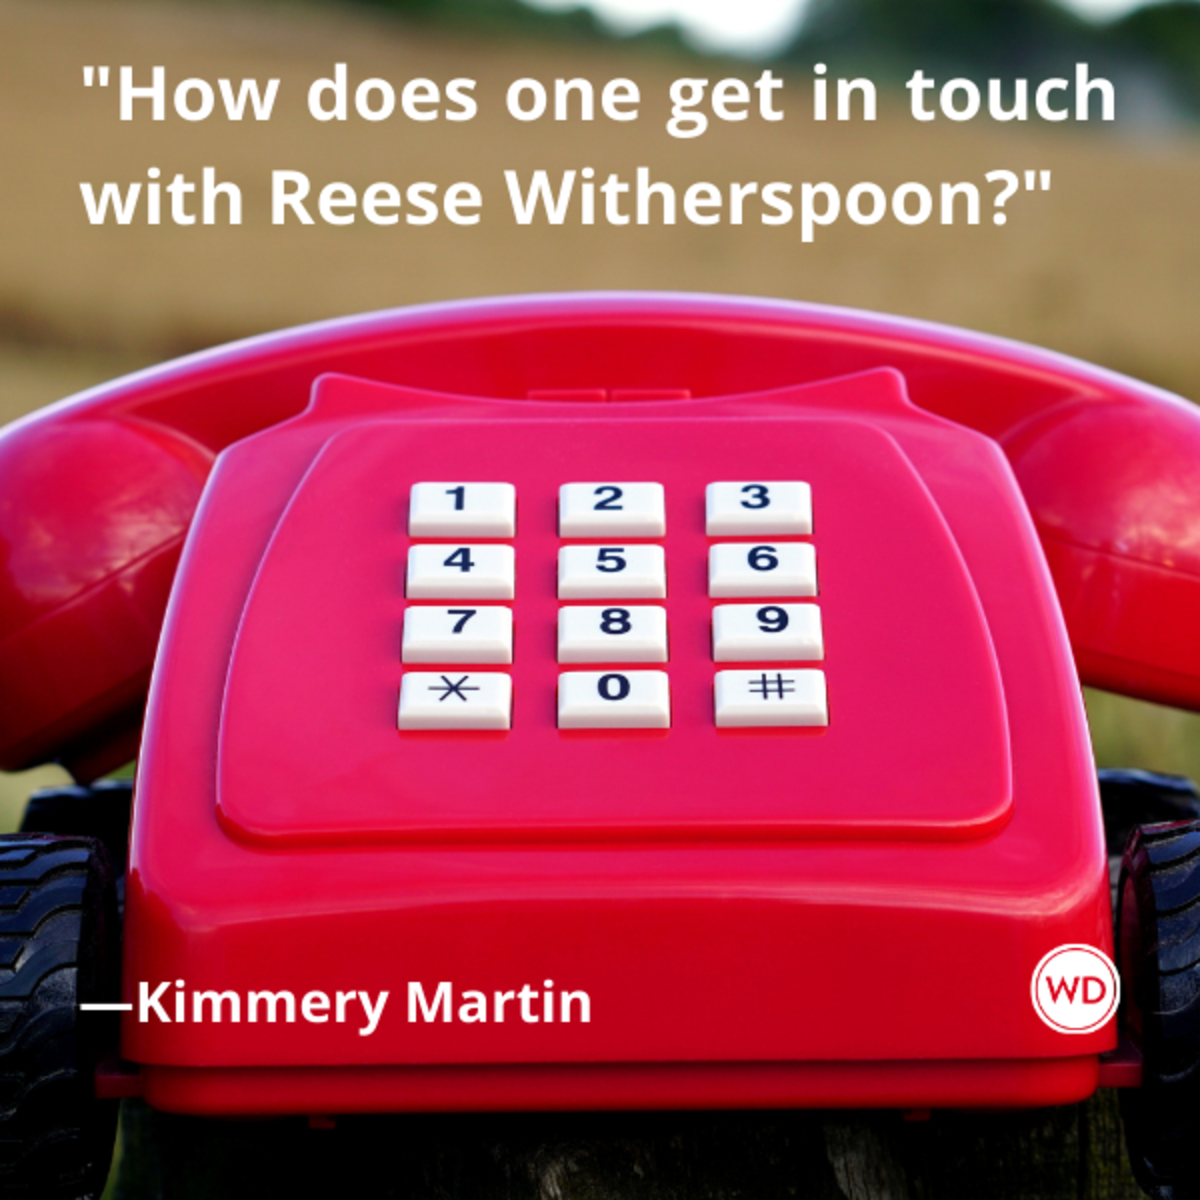 kimmery_martin_quotes_how_does_one_get_in_touch_with_reese_witherspoon